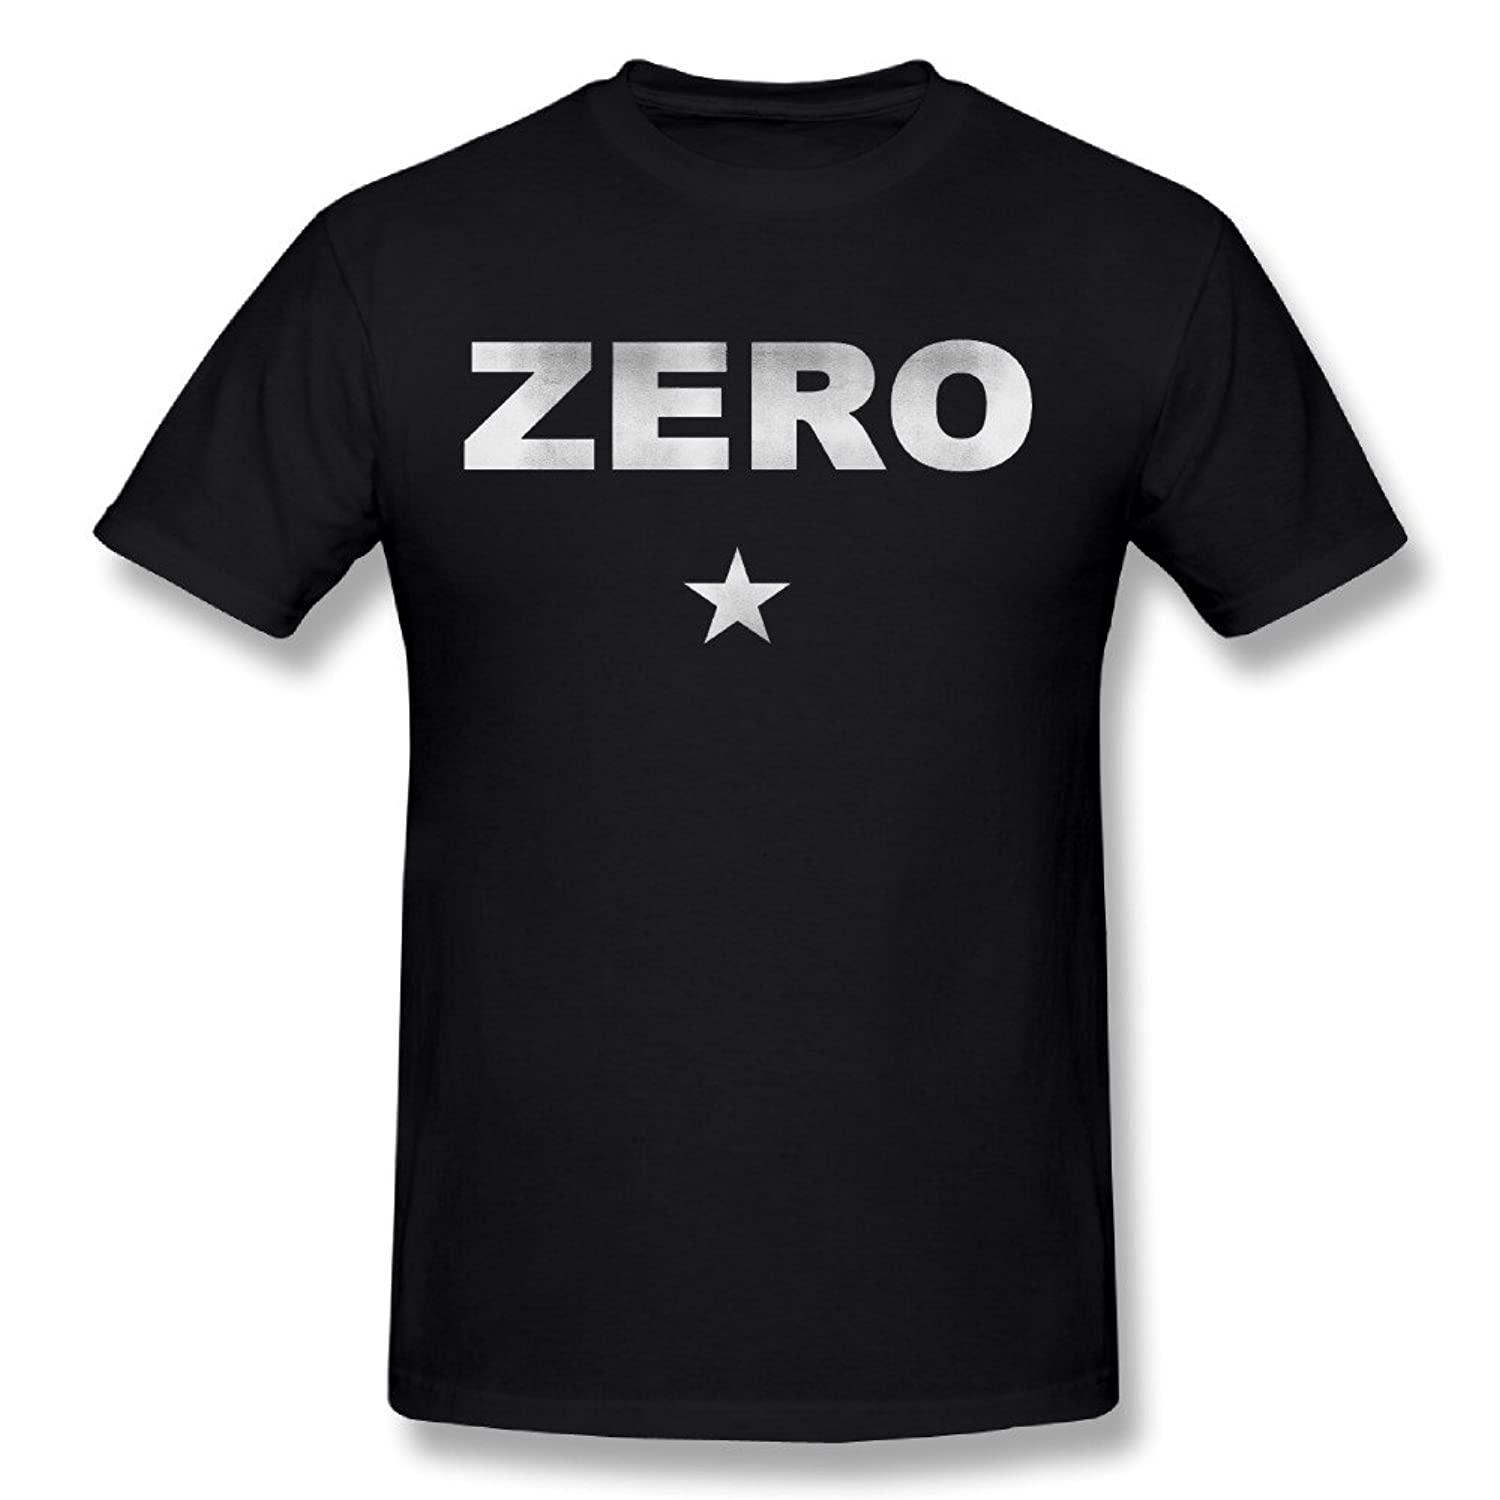 Maria Black Men's O-neck Shirts The Smashing Pumpkins Zero Star Logo